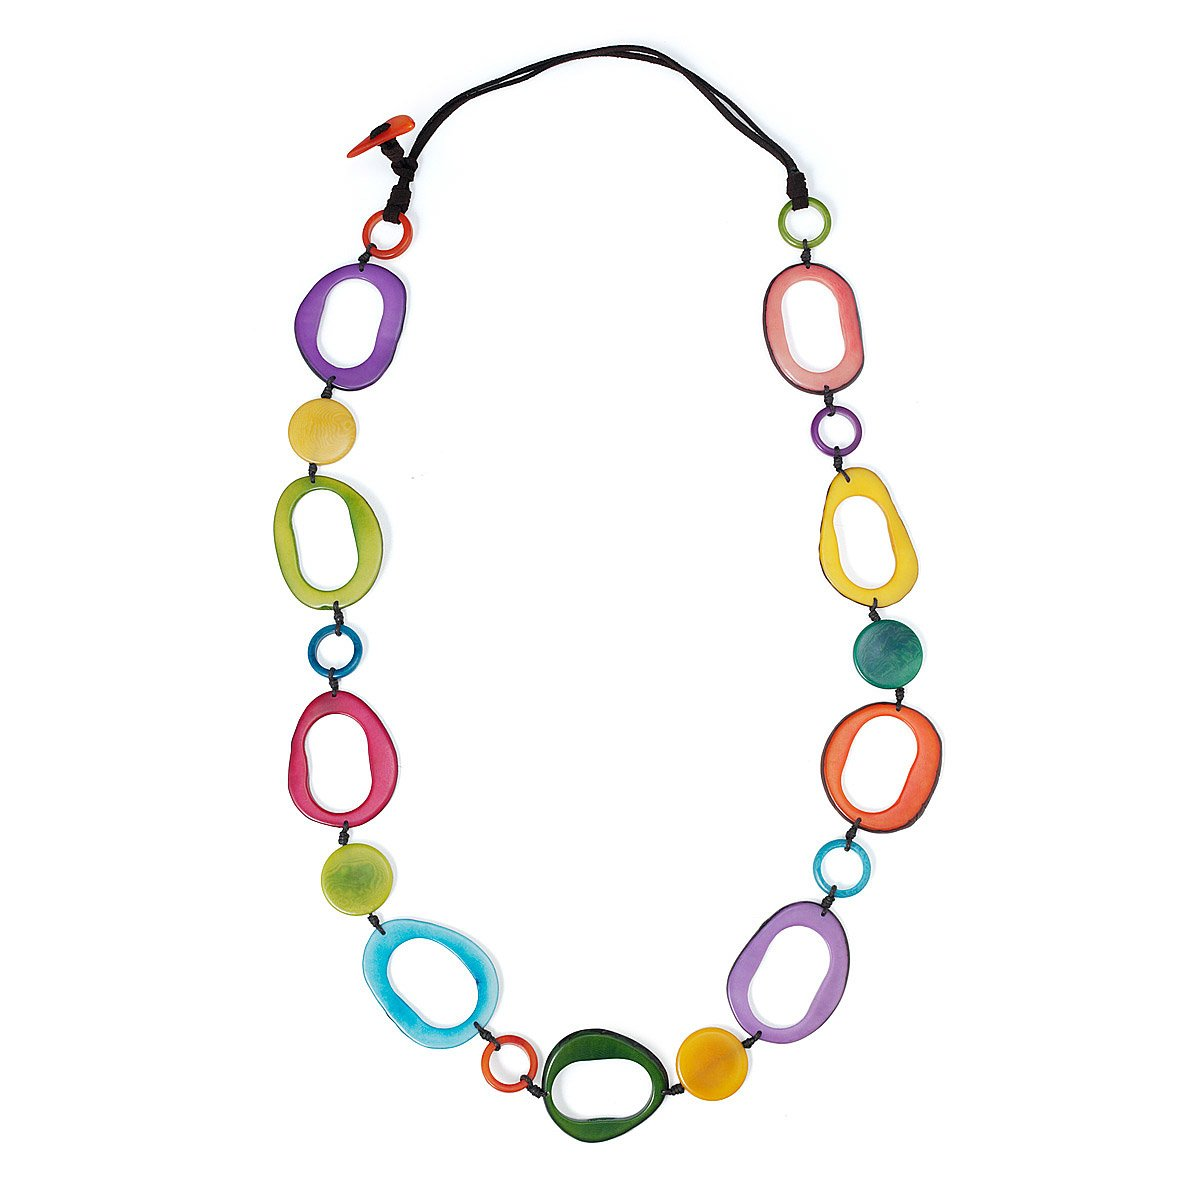 canada symphony tagua l ten thousand villages necklace